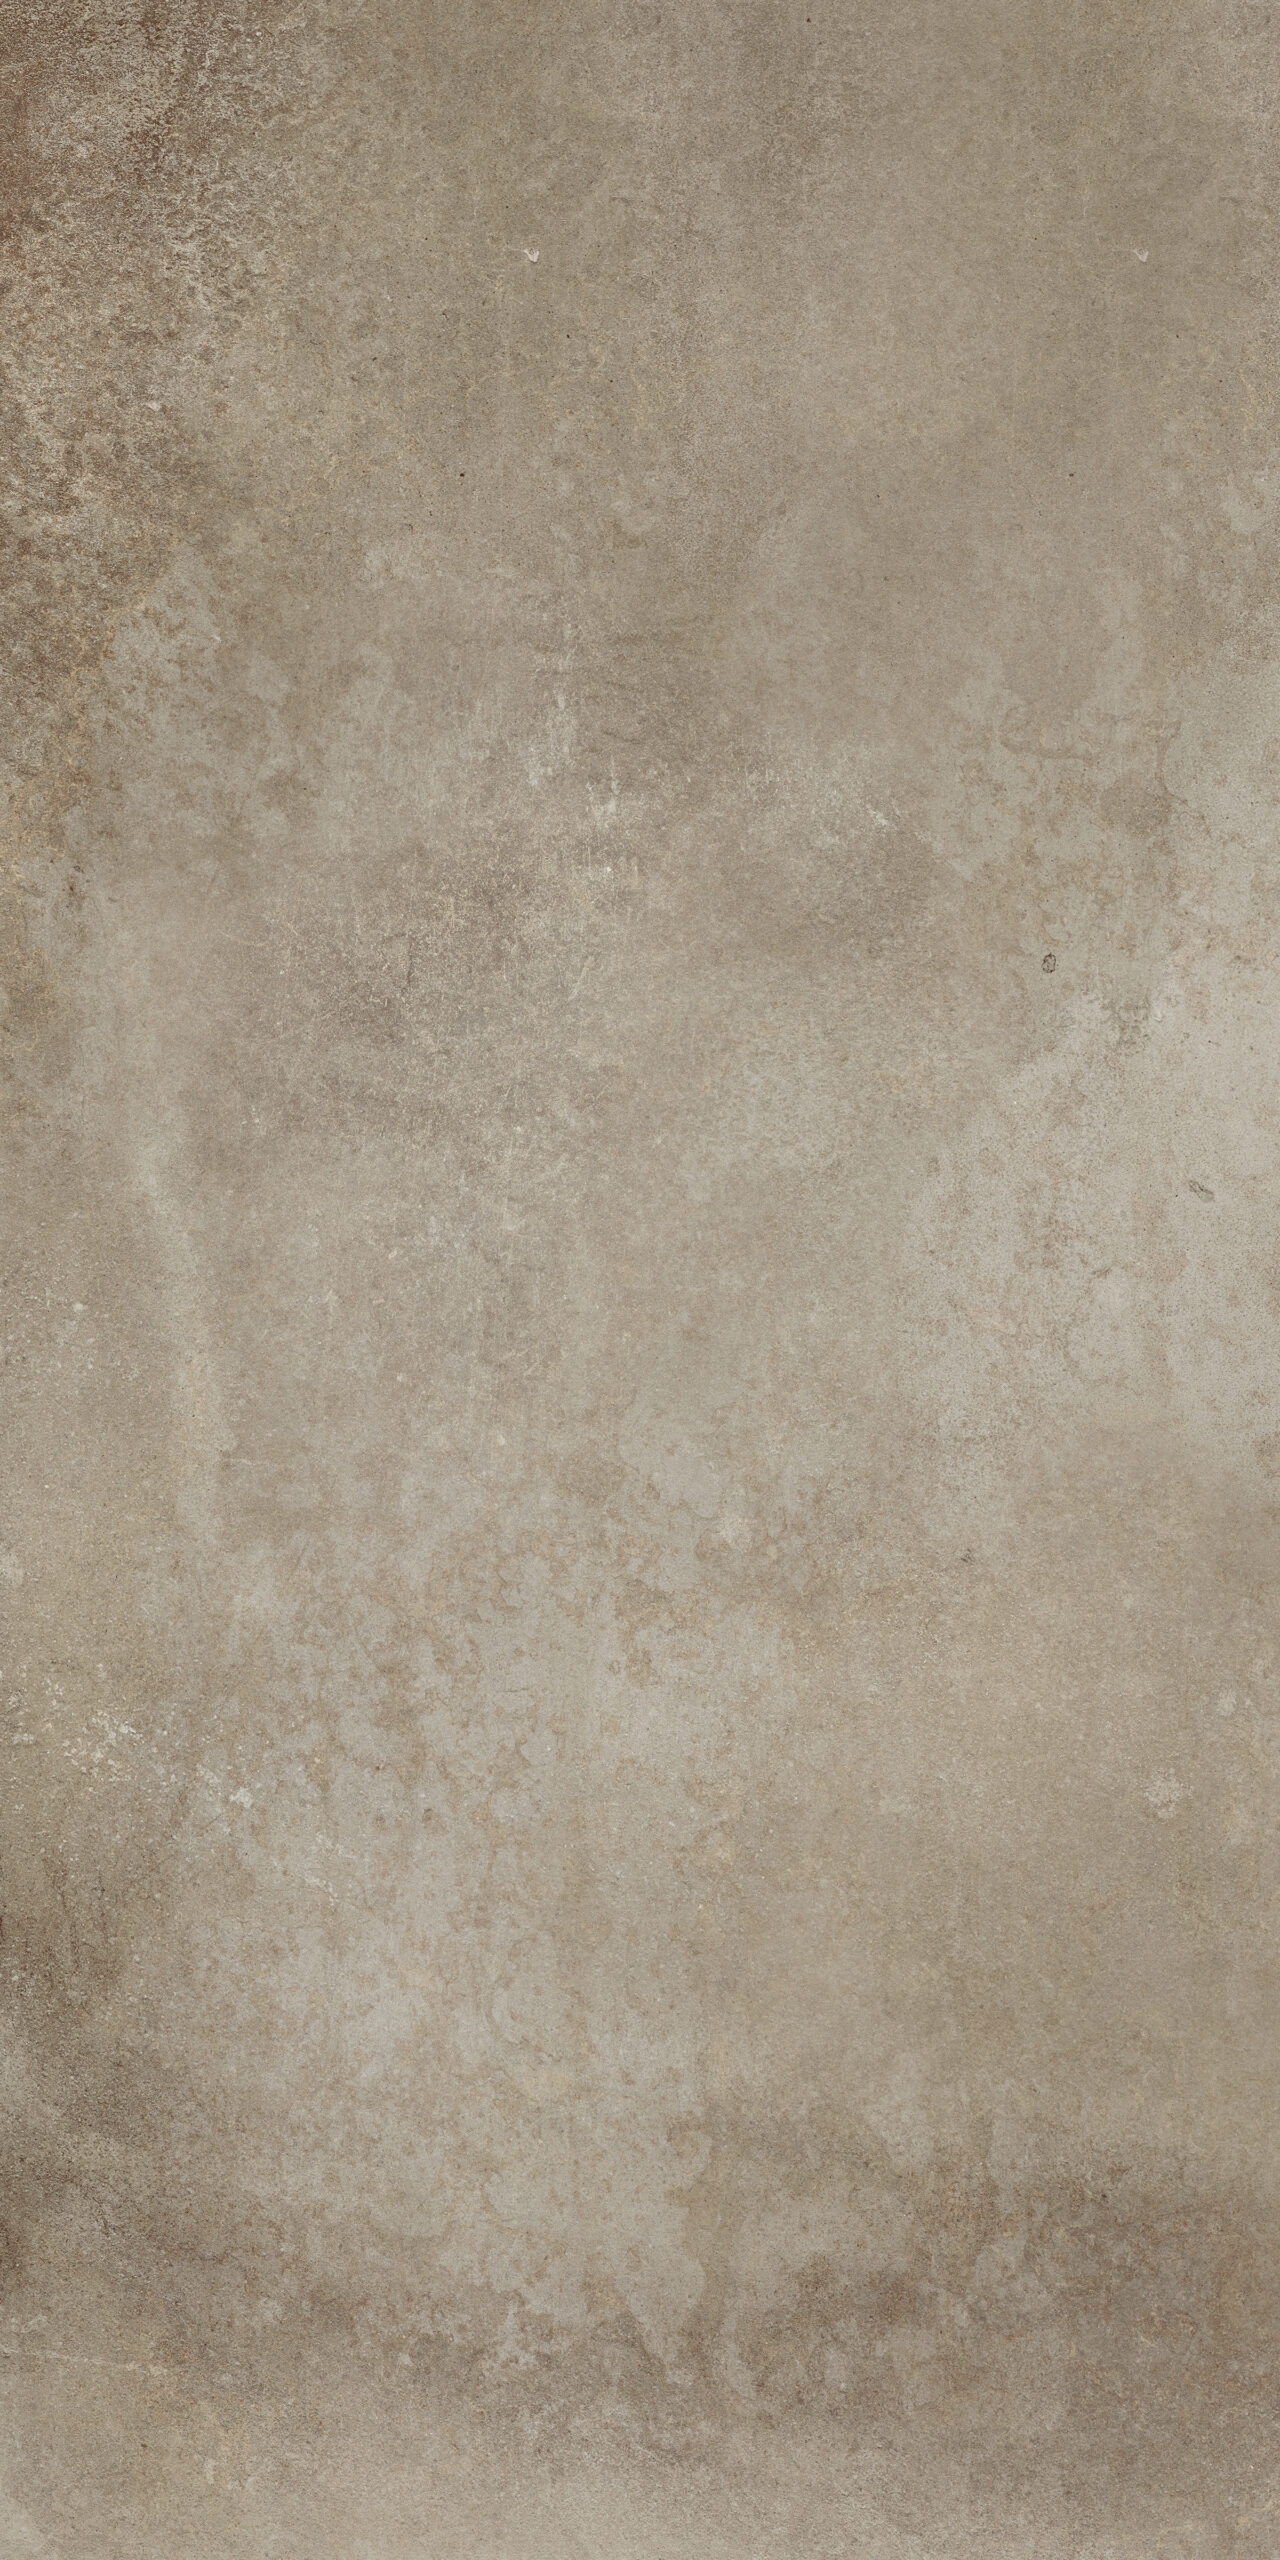 65 530 16x32 Ceraforge Iron HD Rectified Porcelain Tile scaled